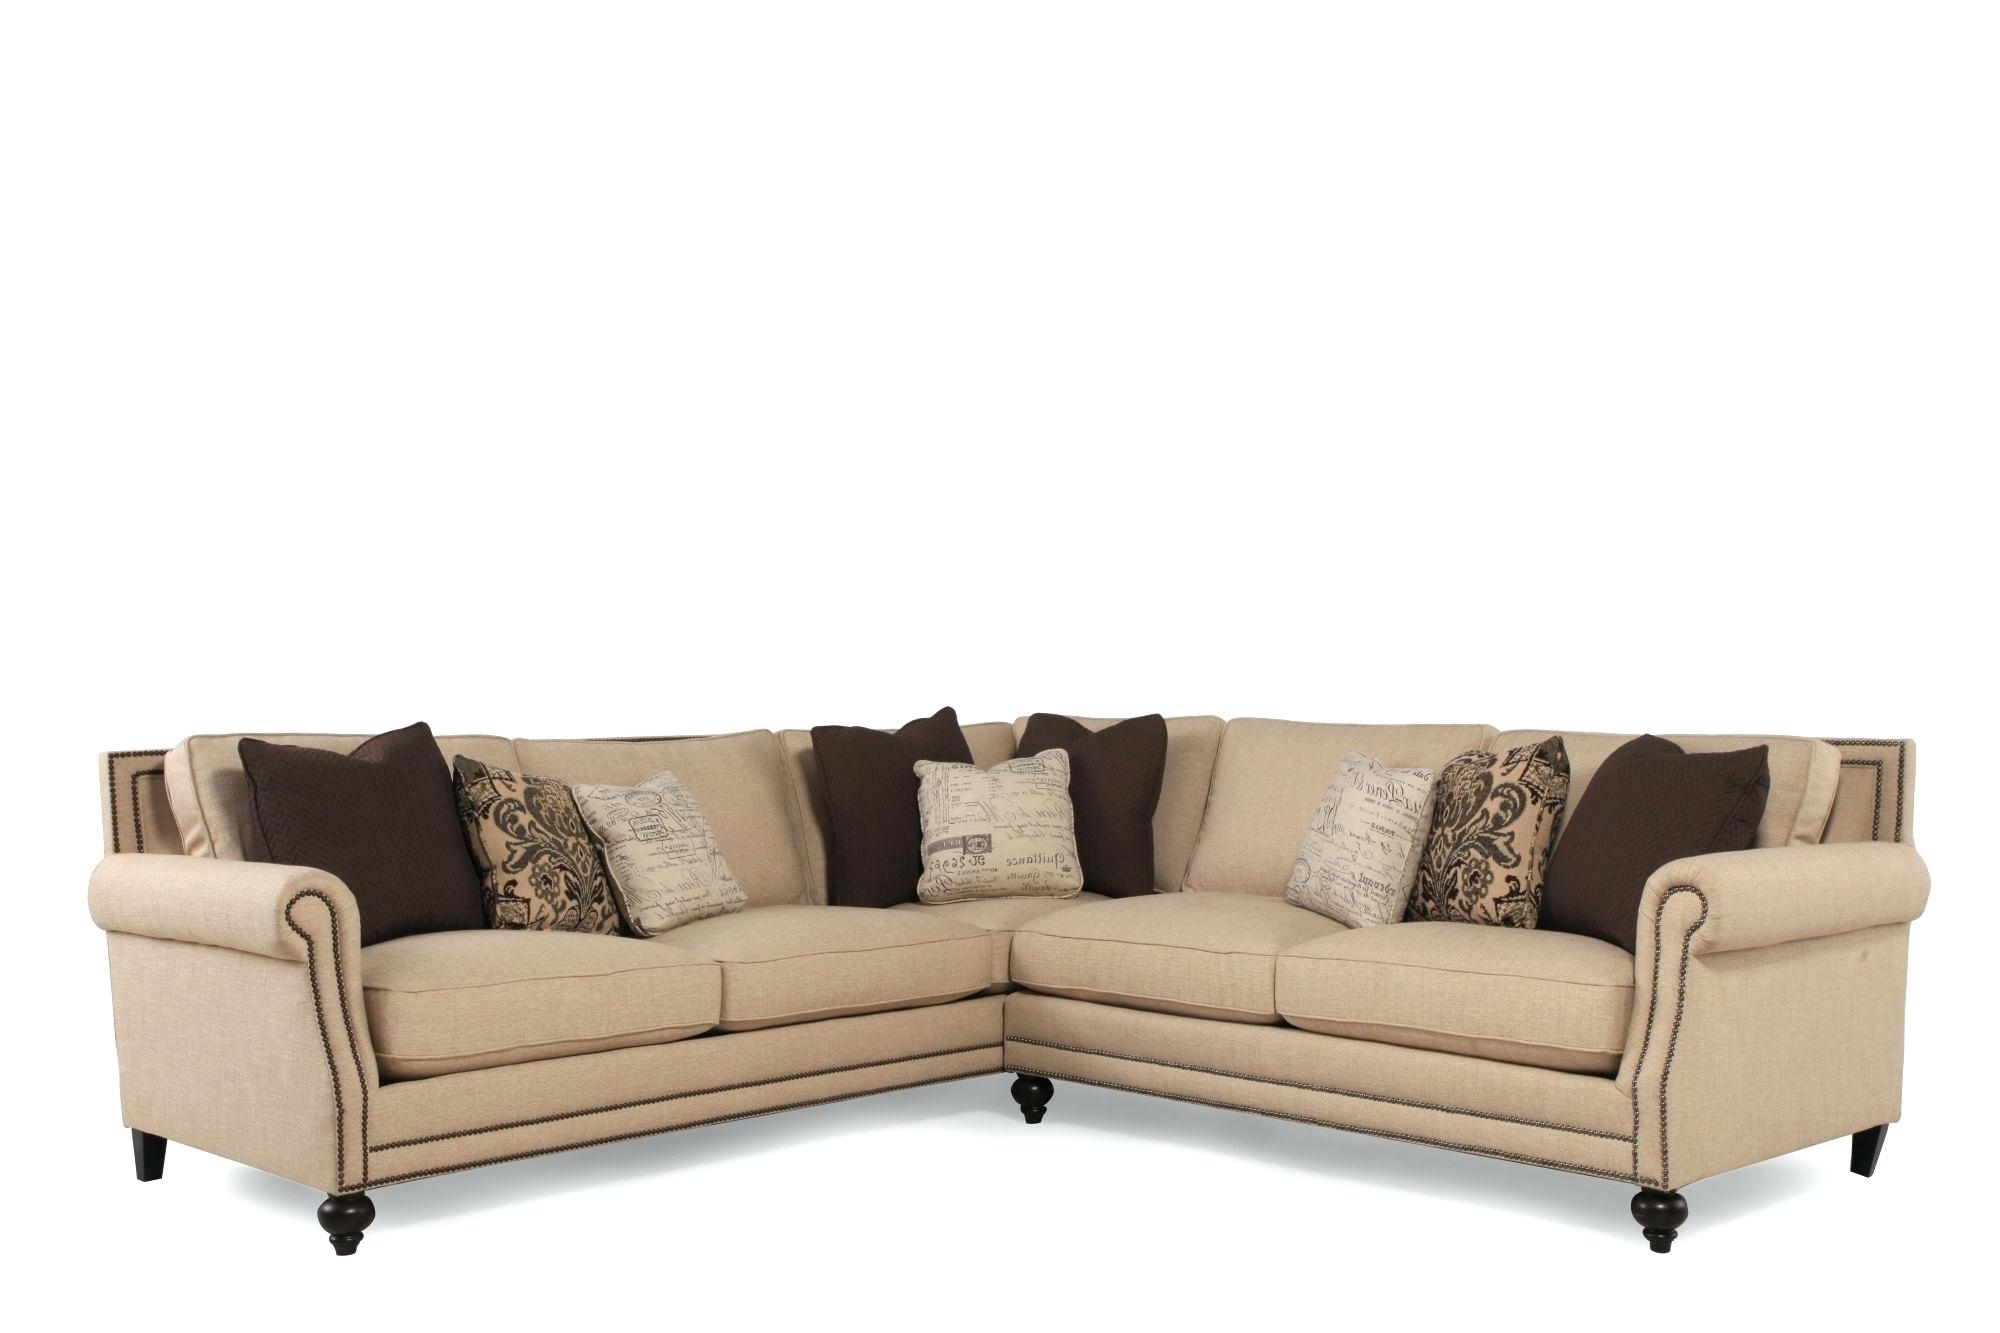 2017 Okc Sectional Sofas Within Sectional Sofas Okc S Cheap For Sale In Oklahoma City (View 1 of 15)